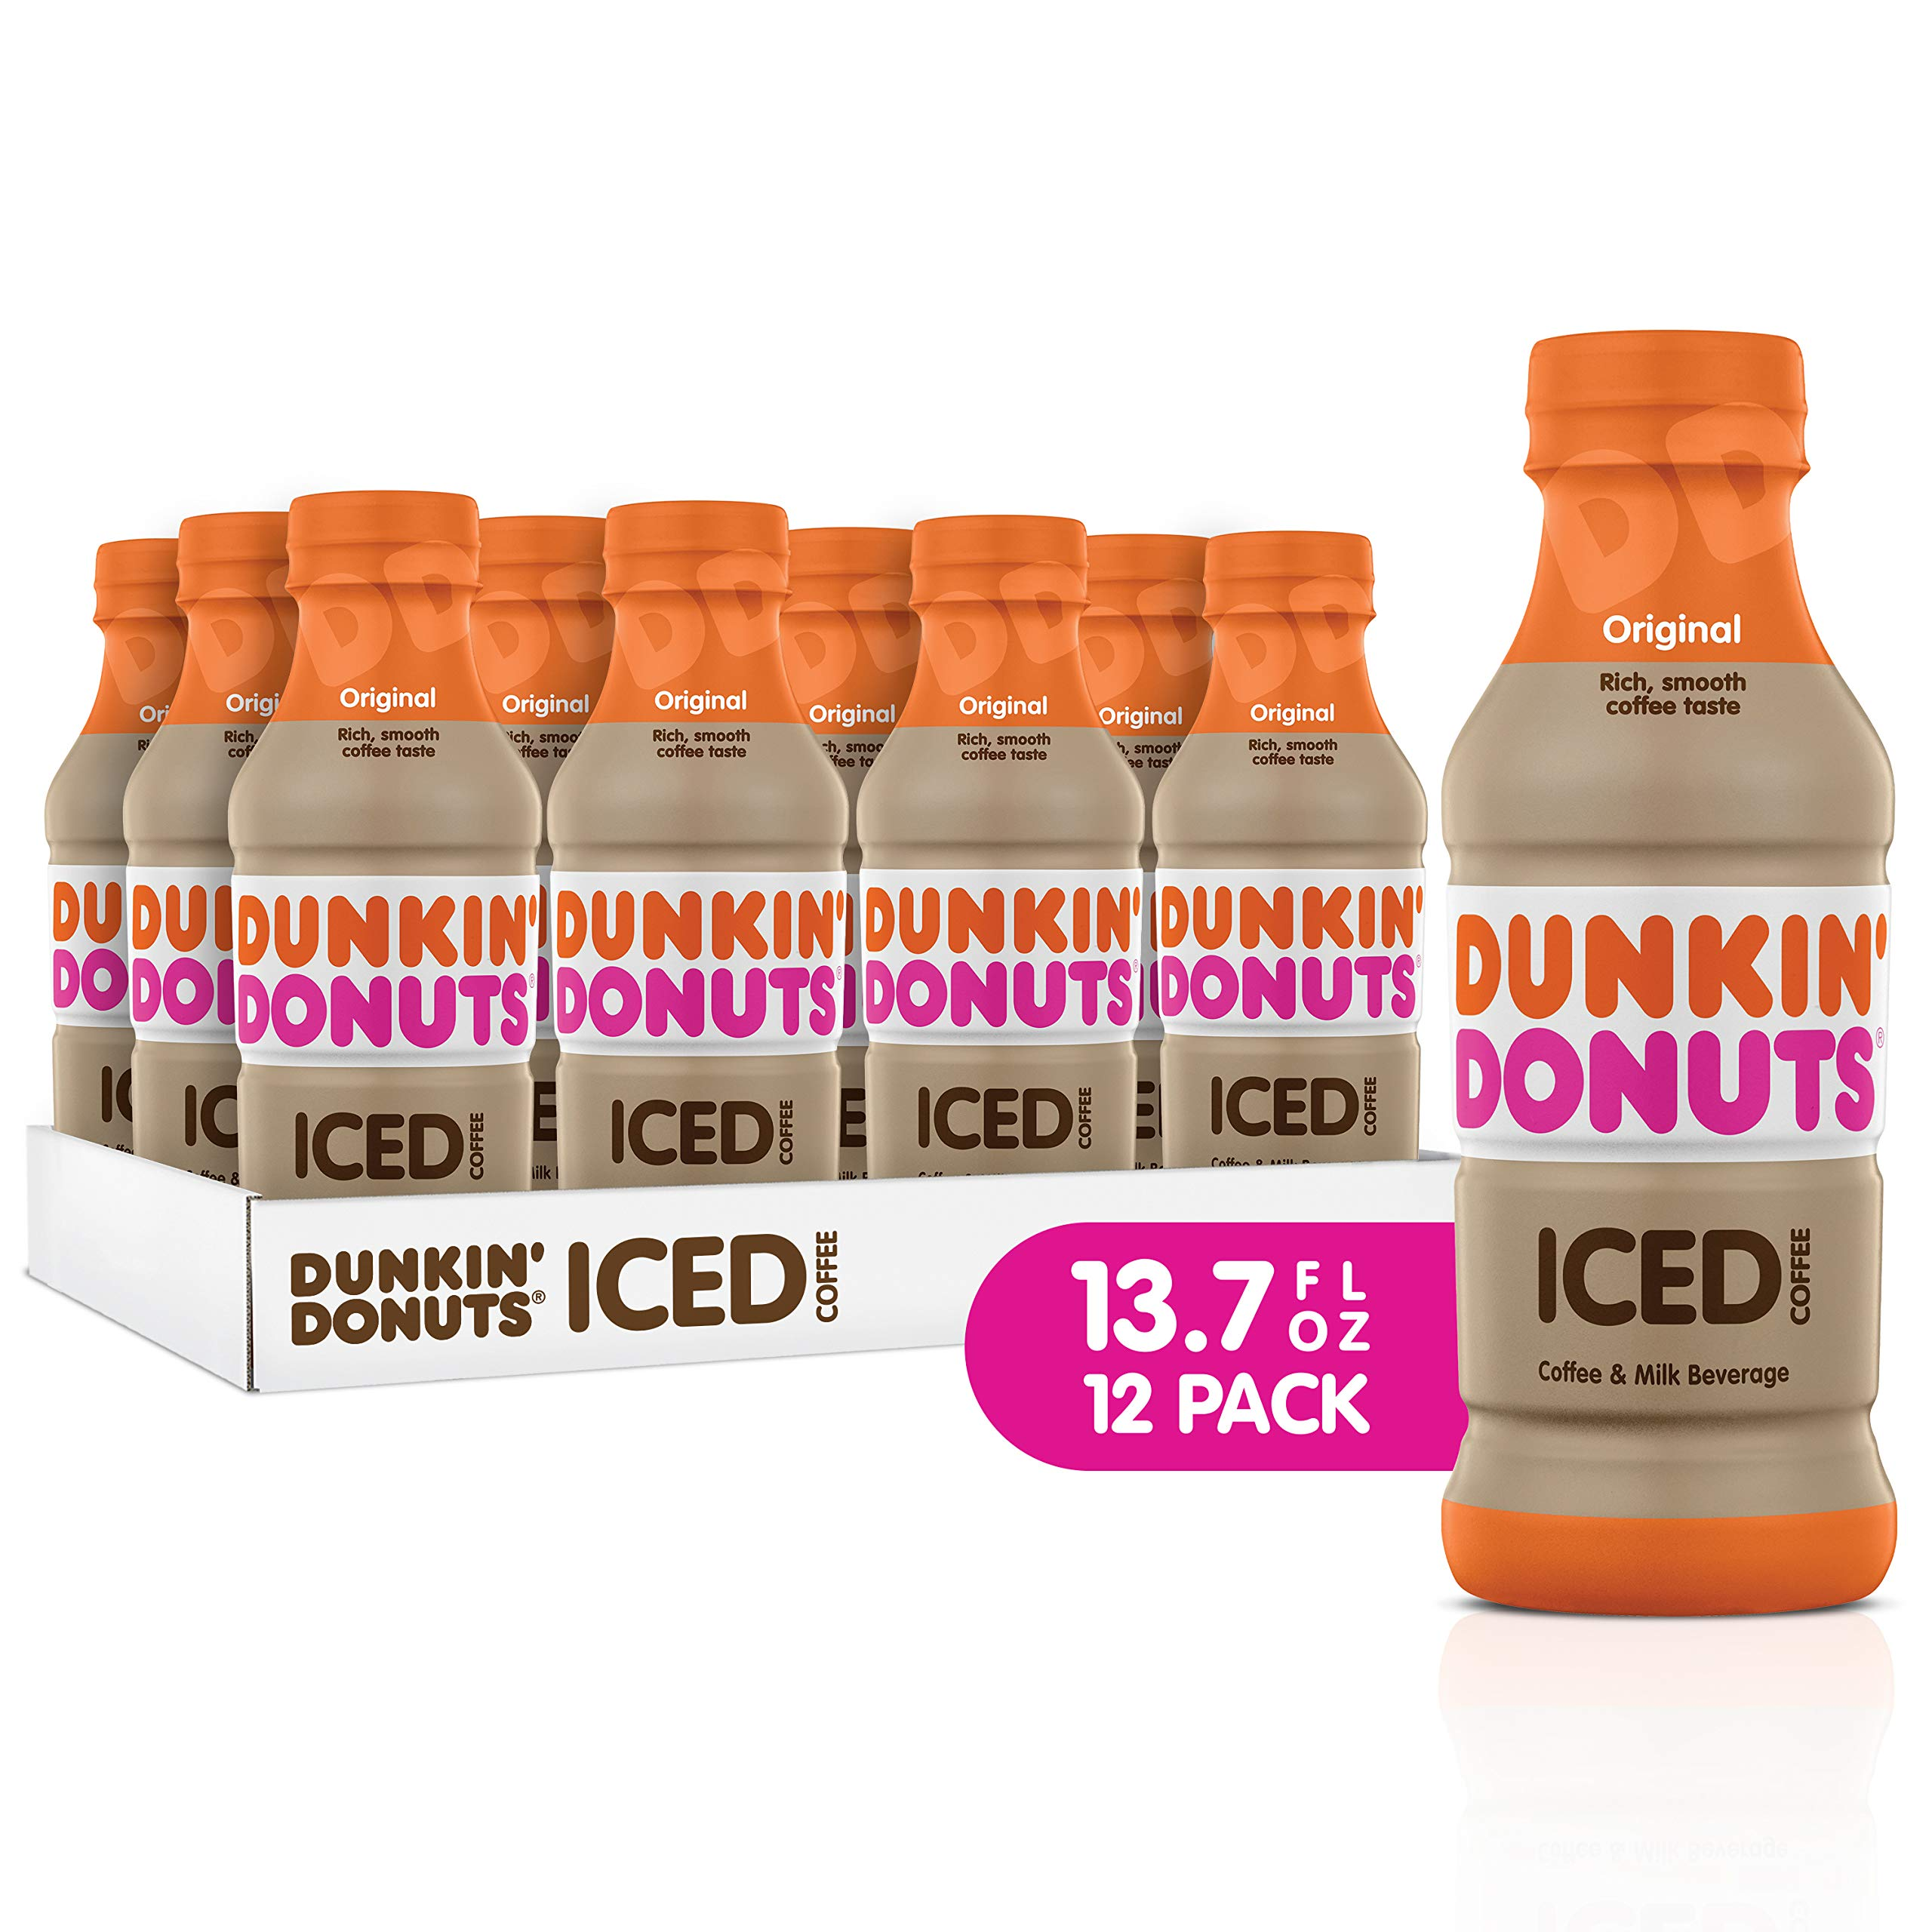 Dunkin Donuts Iced Coffee, Original, 13.7 Fluid Ounce (Pack of 12) by Dunkin Donuts